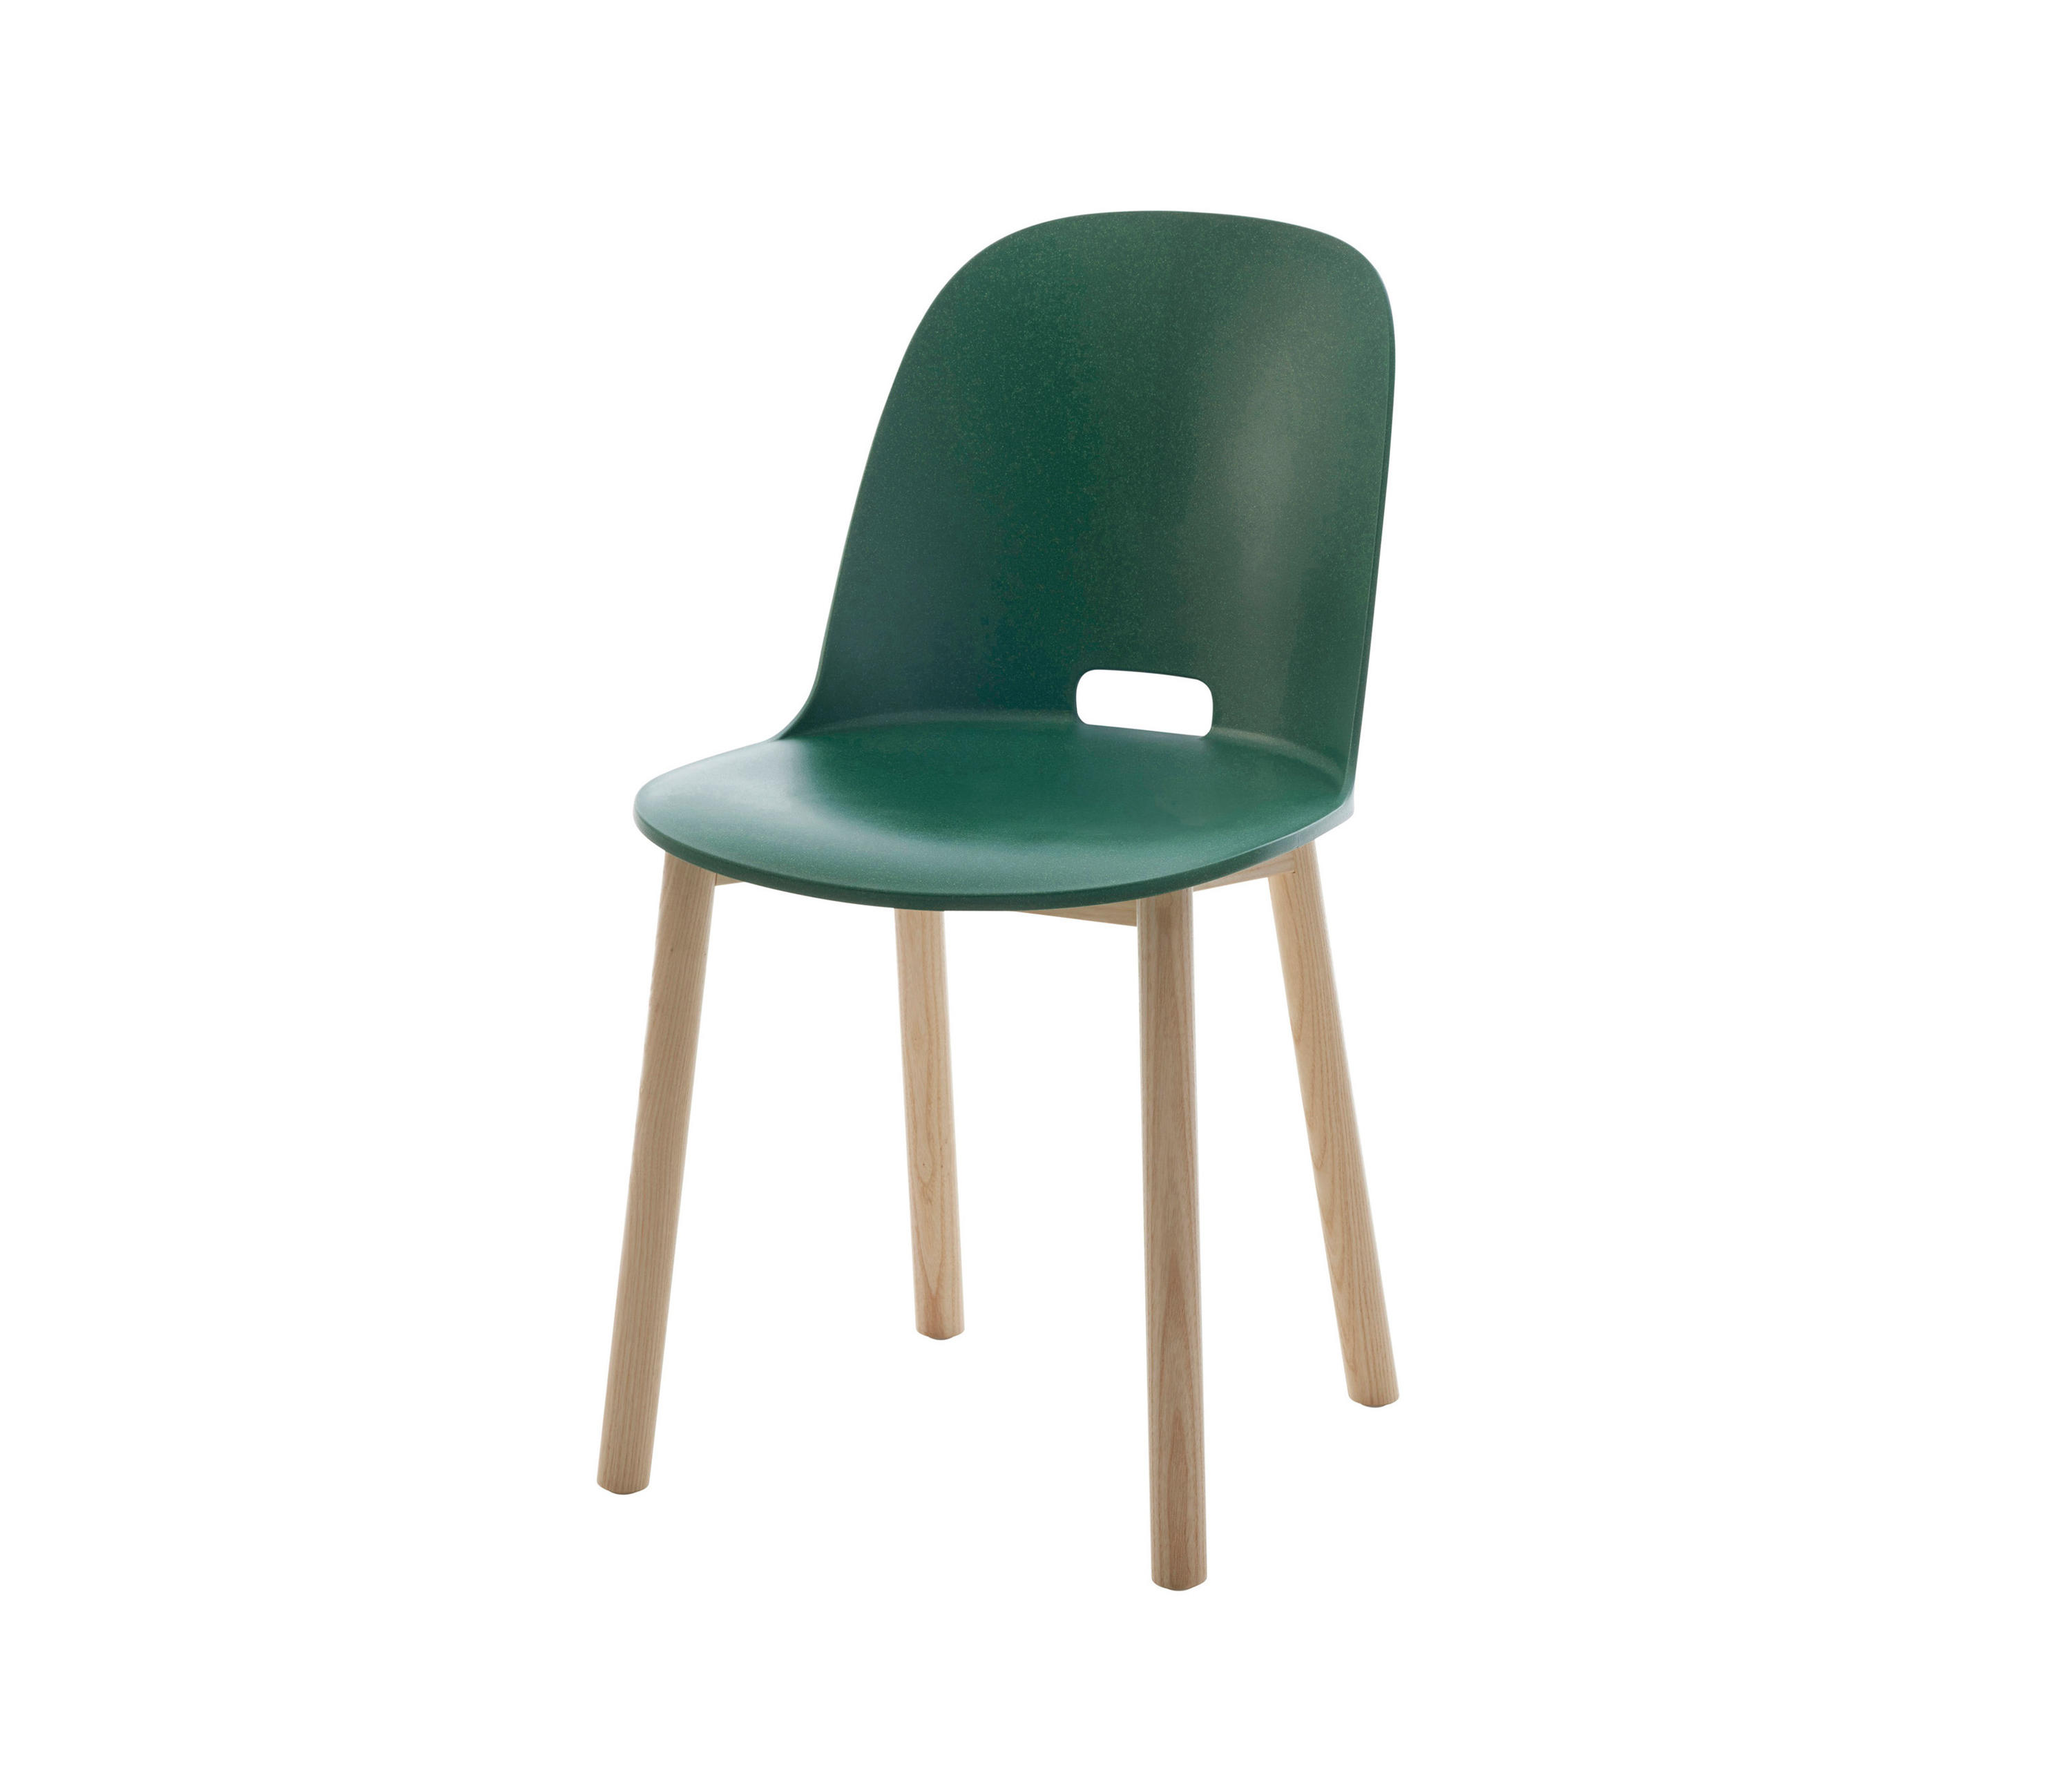 Broom chair for emeco in 2012 to showcase the properties of a new wood - Alfi Chair High Back Restaurant Chairs Emeco